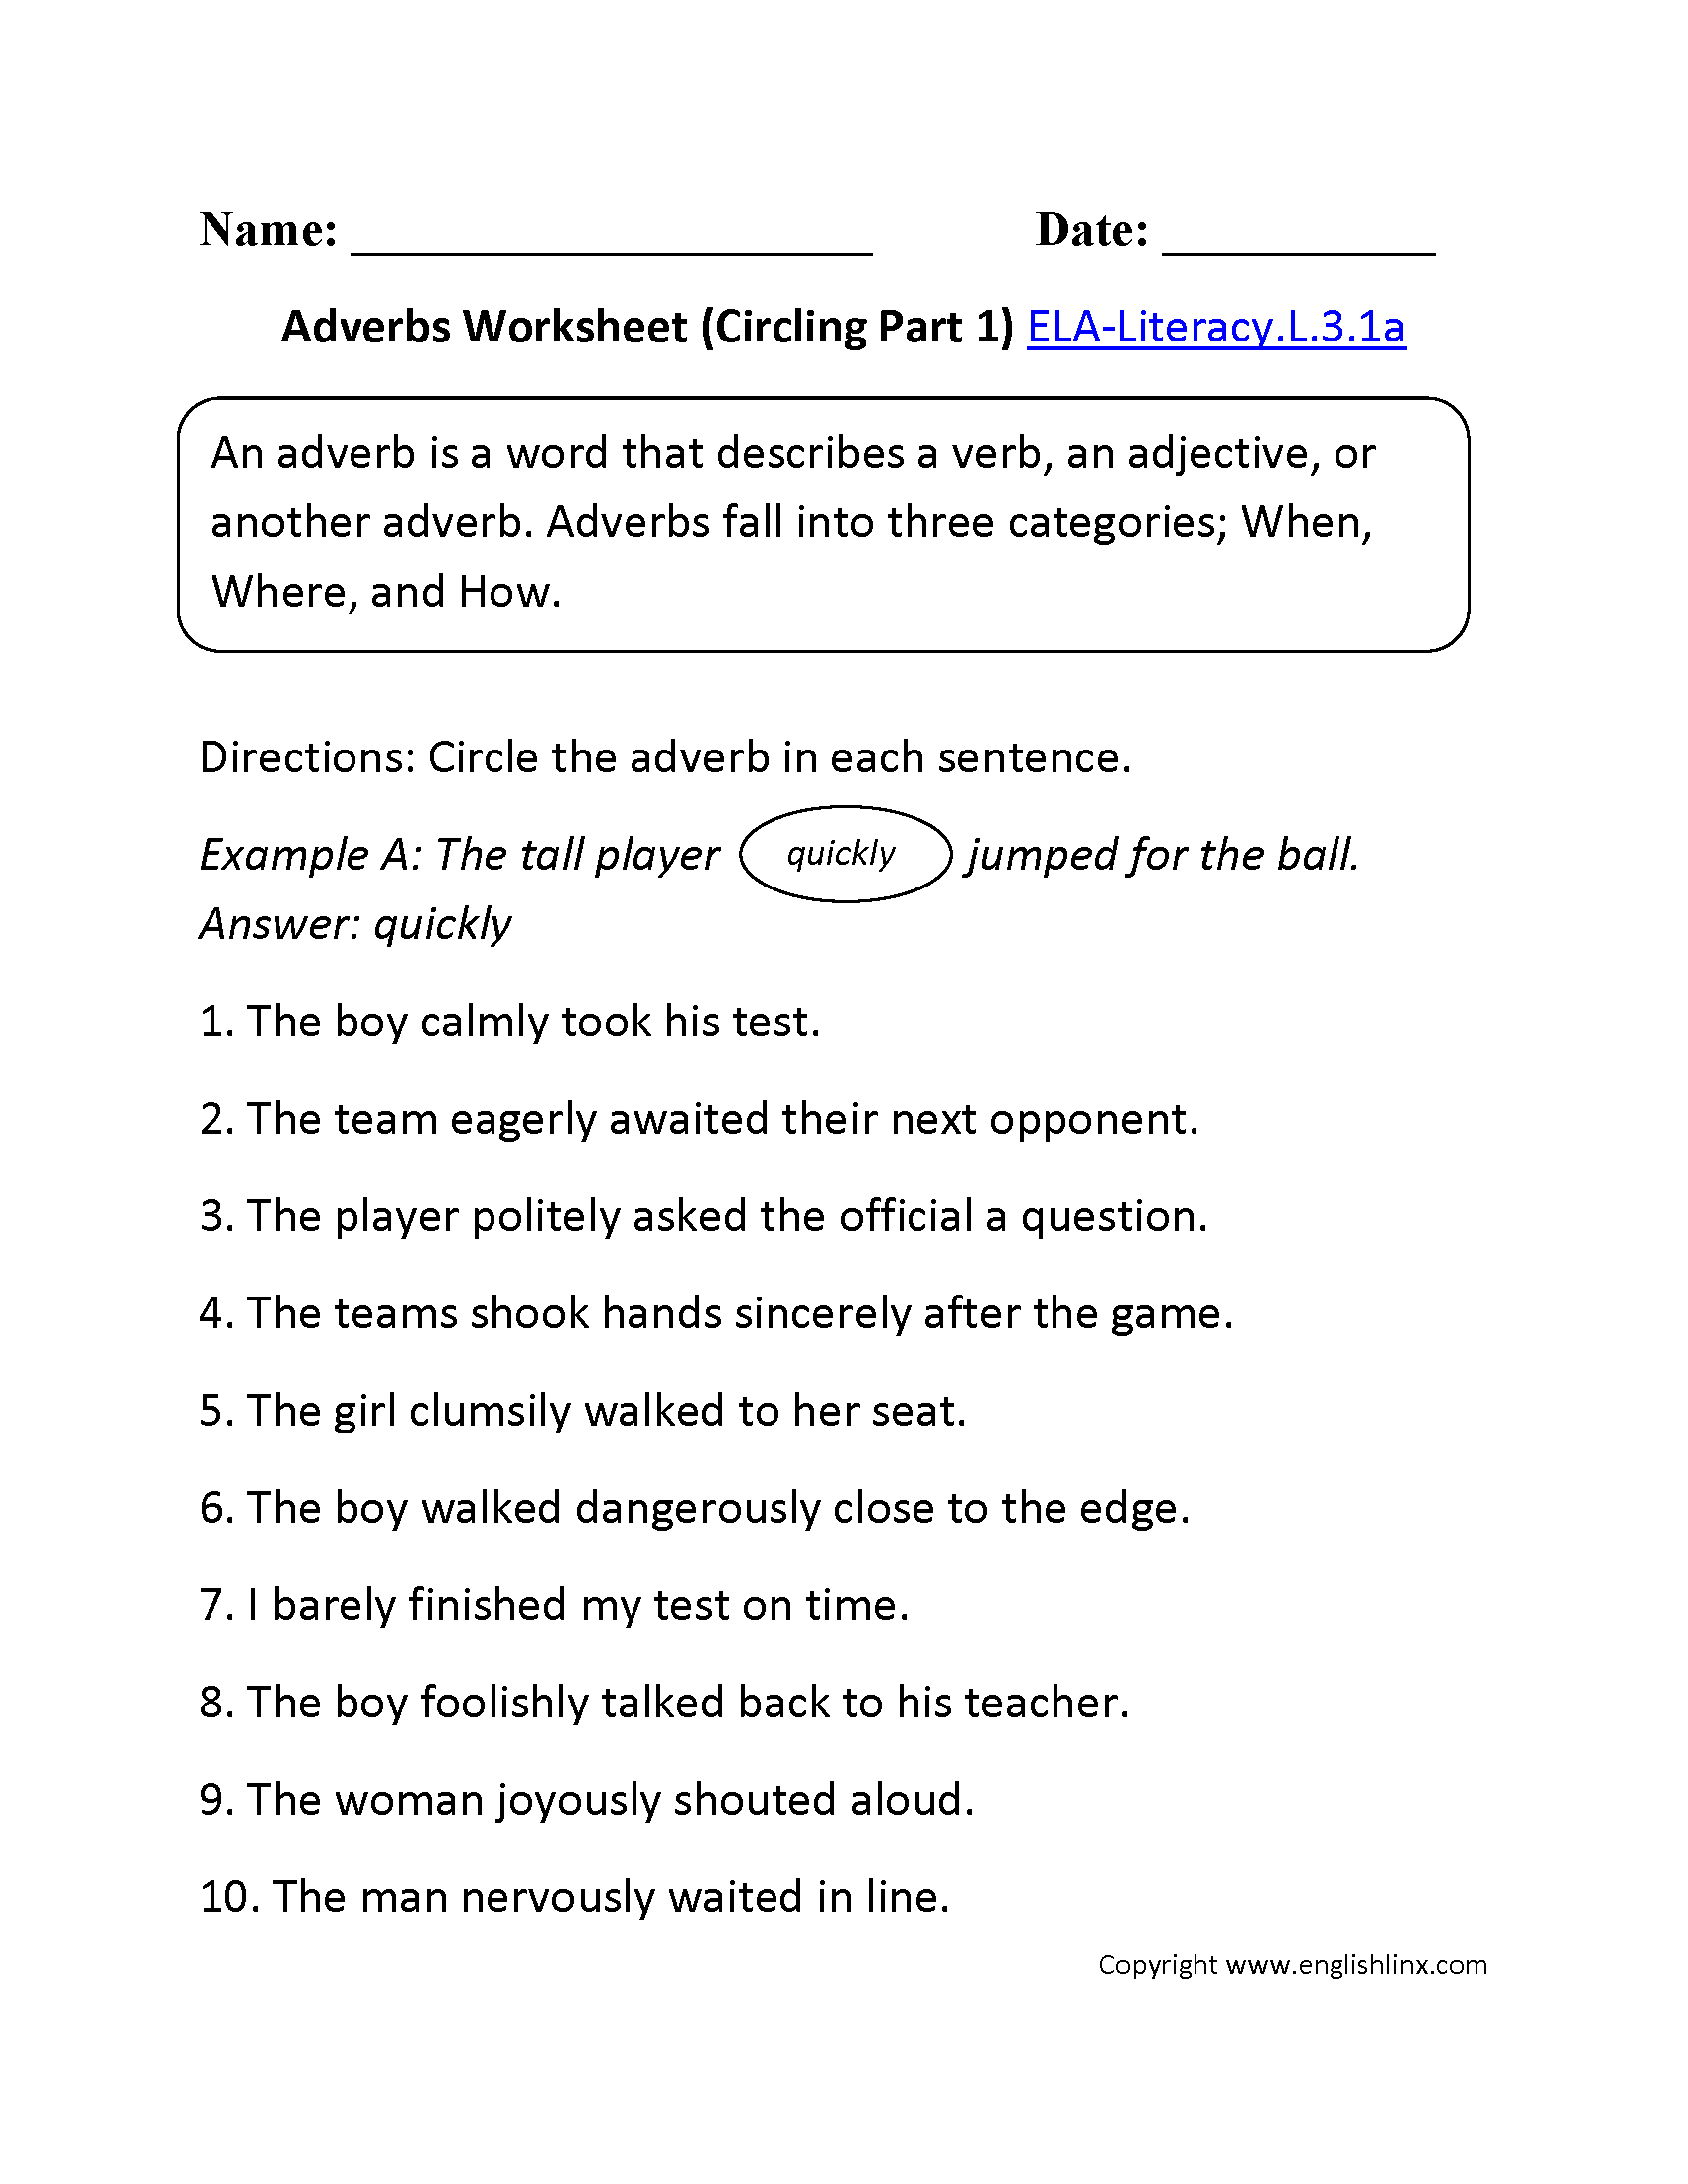 Worksheets Year 3 English Worksheets adverbs worksheet 1 ela literacy l 3 1a language english worksheets that are aligned to the grade common core standards for language